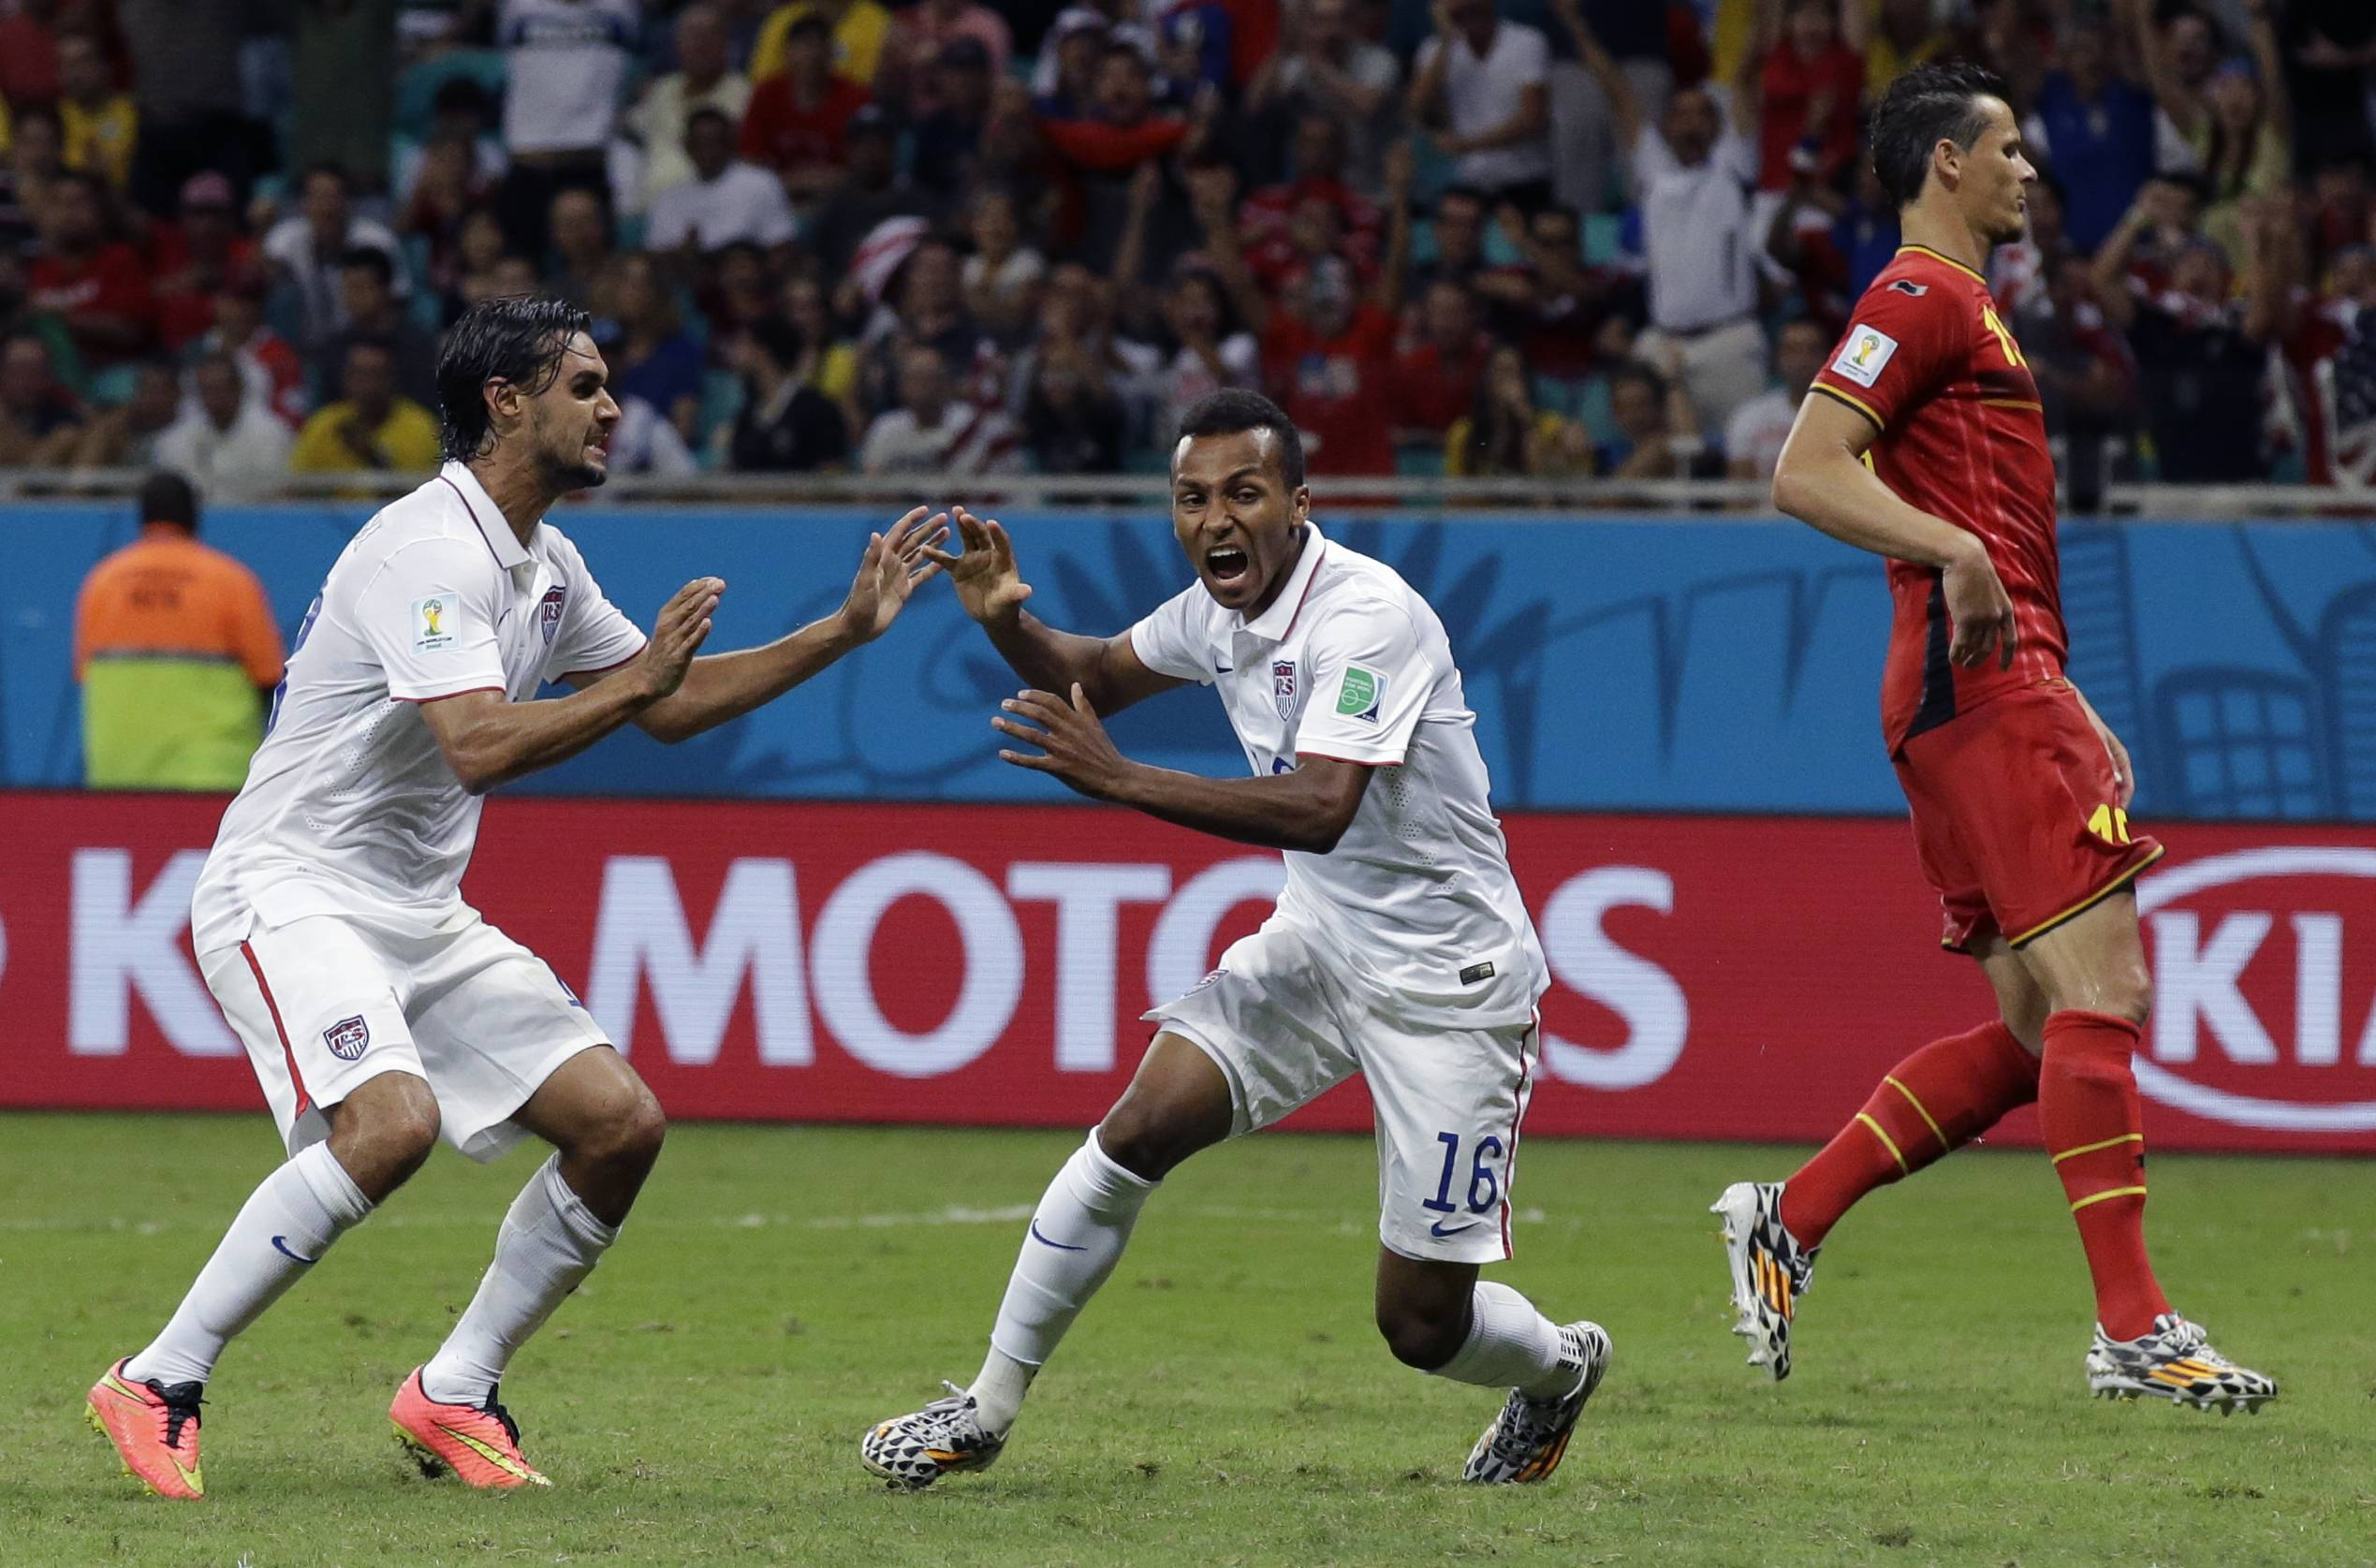 Julian Green, middle, celebrates after scoring the United States' goal Tuesday during the World Cup Round of 16 match won by Belgium 2-1.